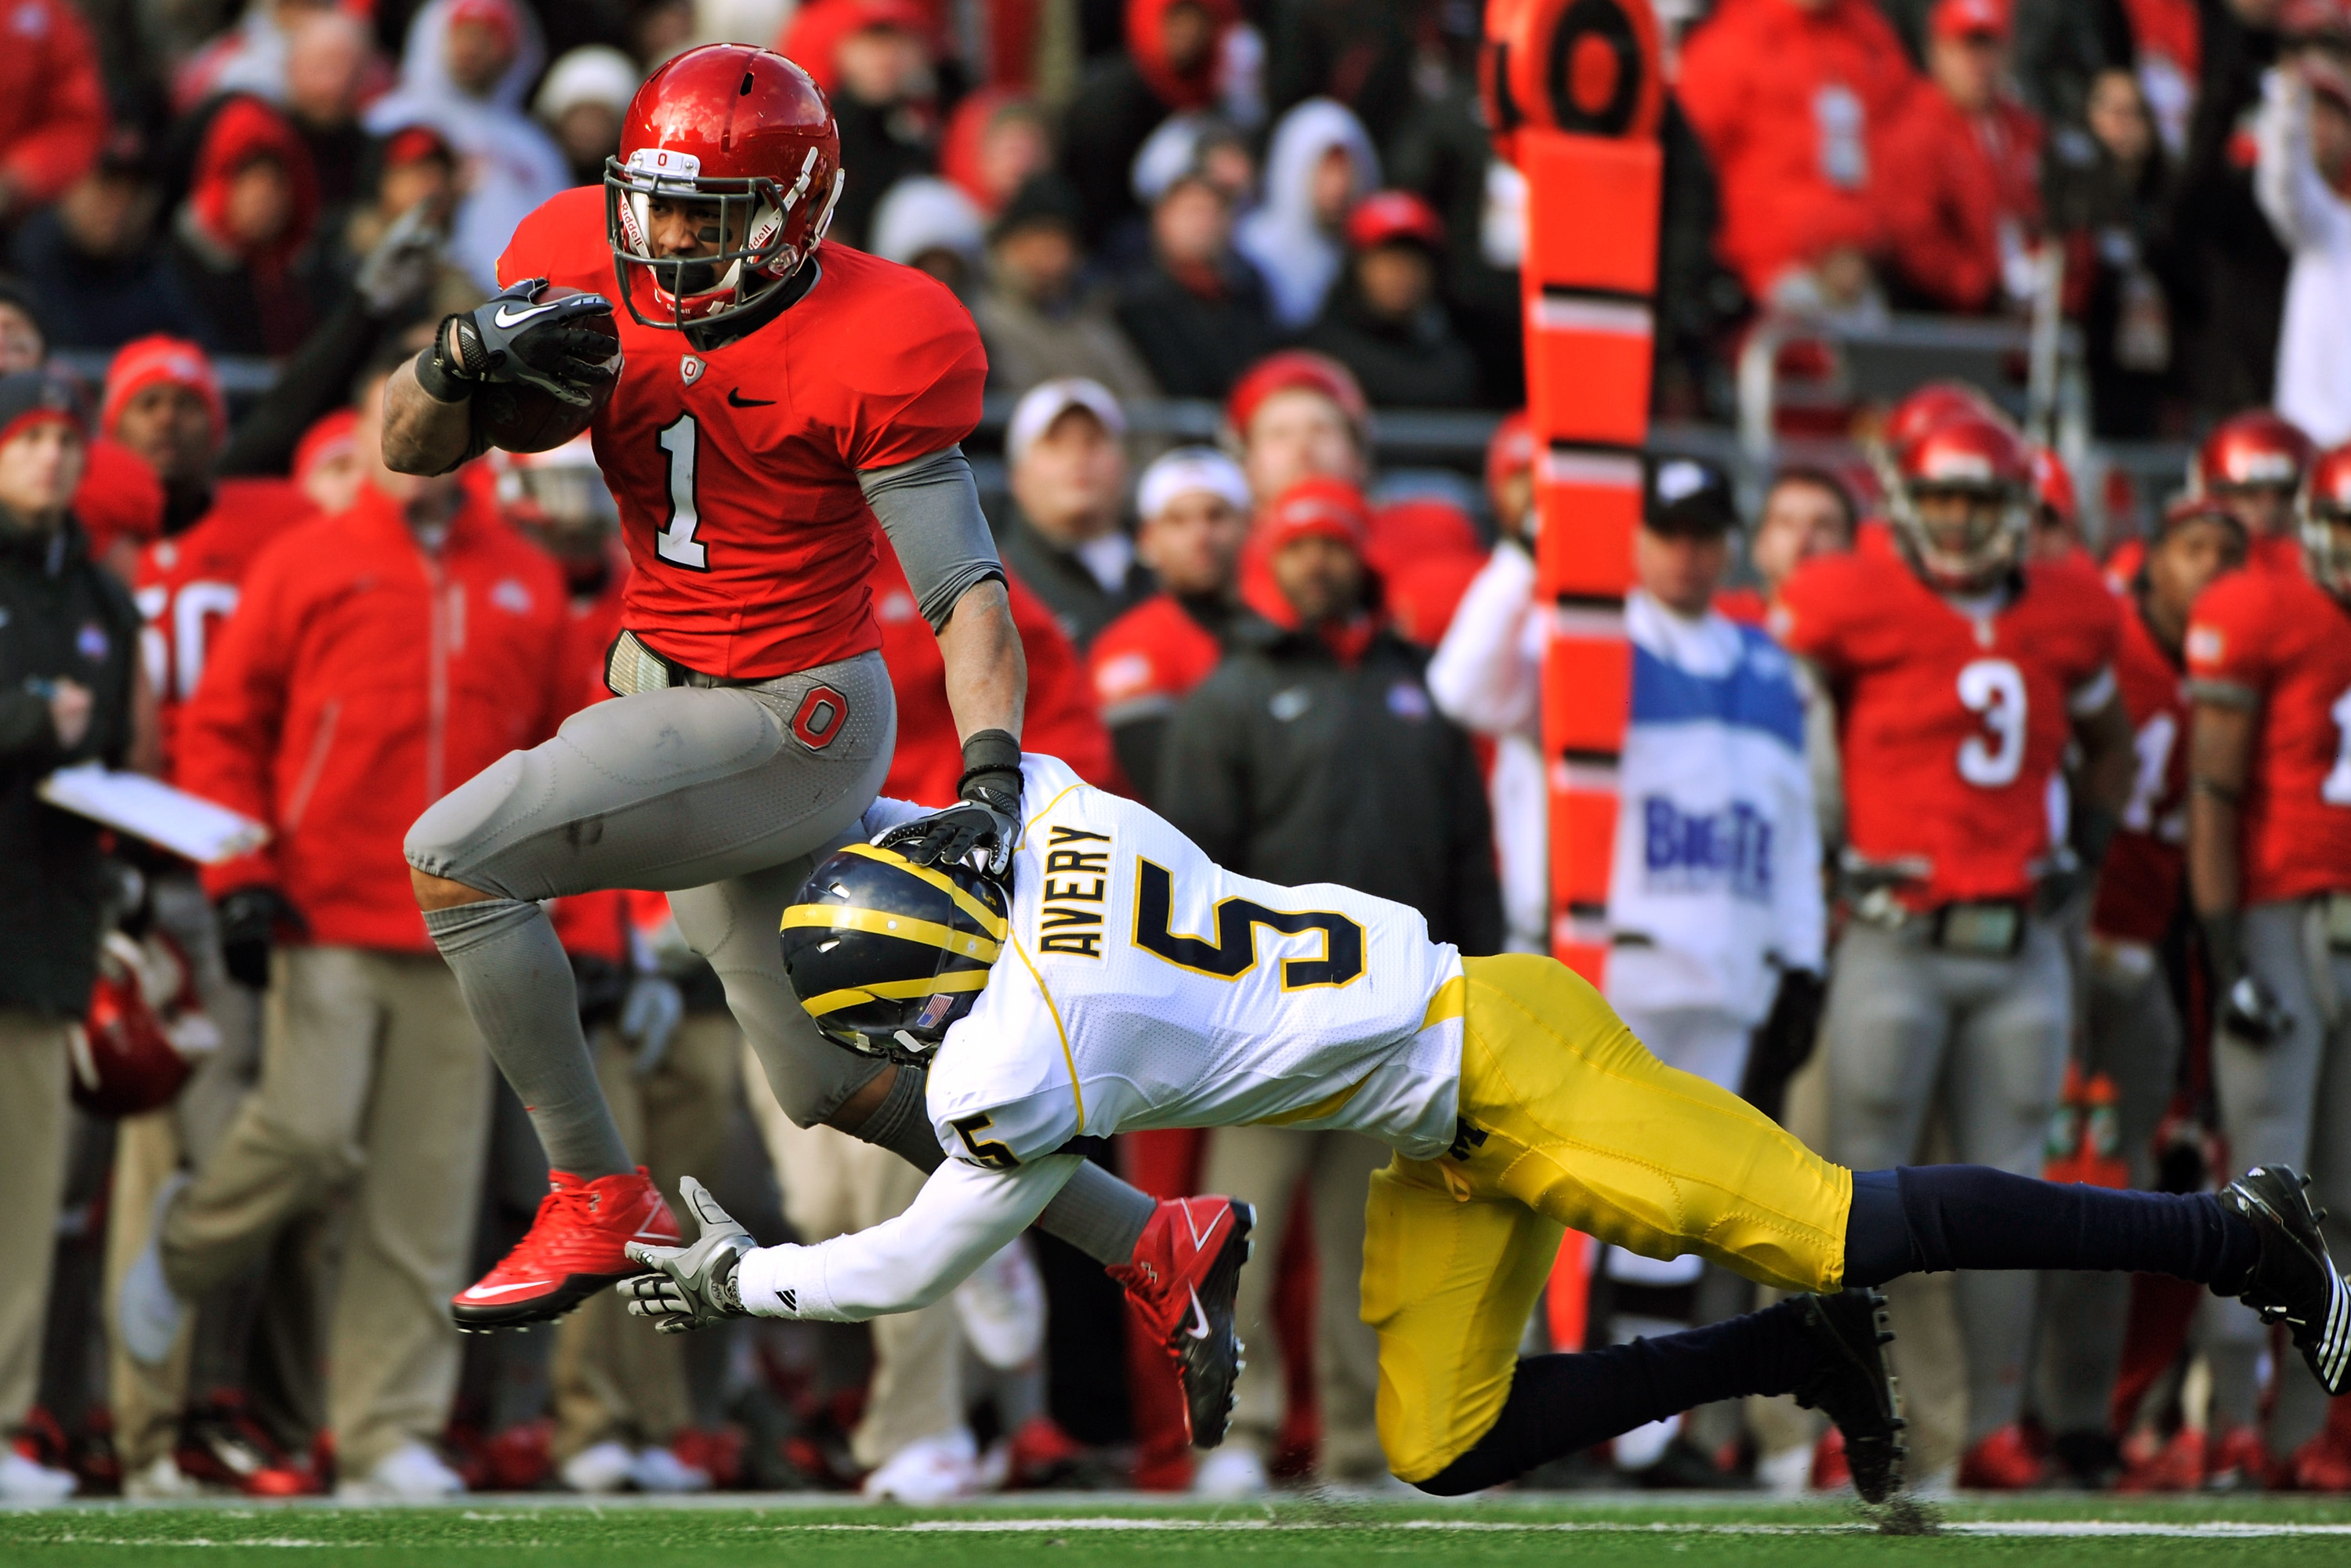 COLUMBUS, OH - NOVEMBER 27:  Dan Herron #1 of the Ohio State Buckeyes eludes the tackle attempt of Courtney Avery #5 of the Michigan Wolverines on his way to a 32-yard touchdown run in the third quarter at Ohio Stadium on November 27, 2010 in Columbus, Oh